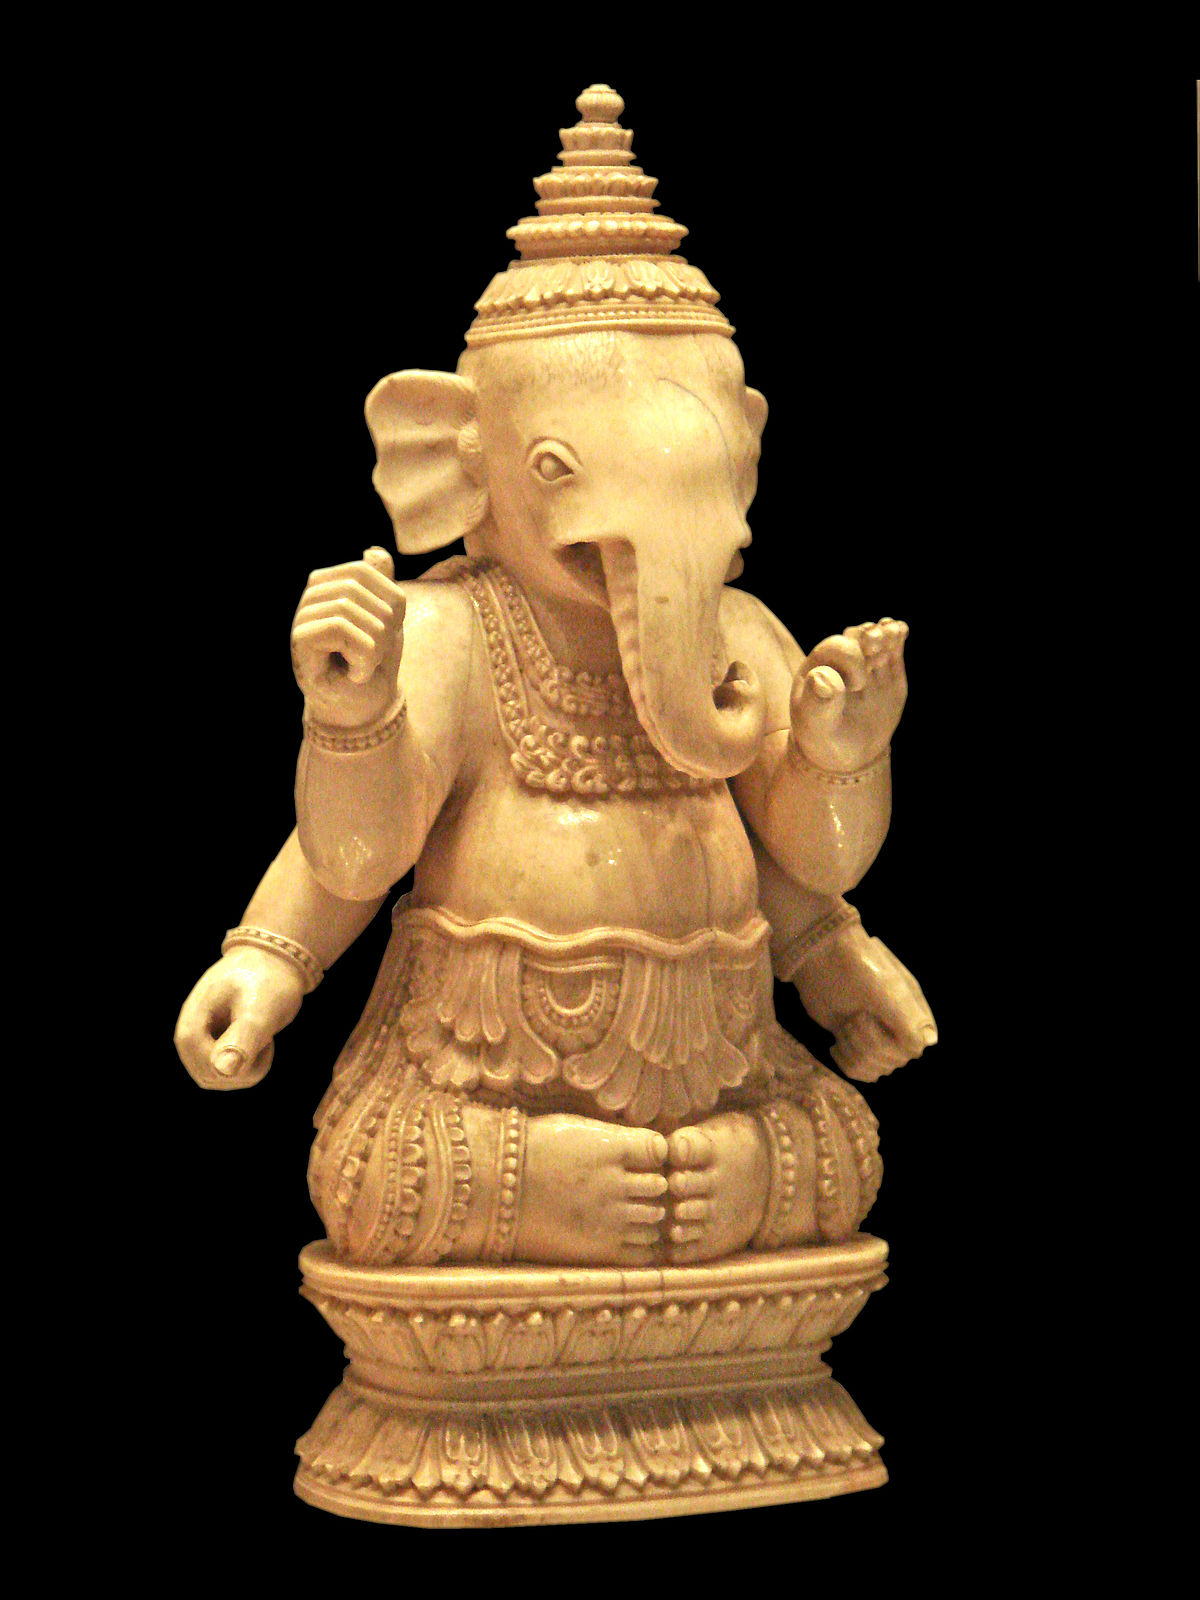 ganesh devotional songs free download mp3 in tamil